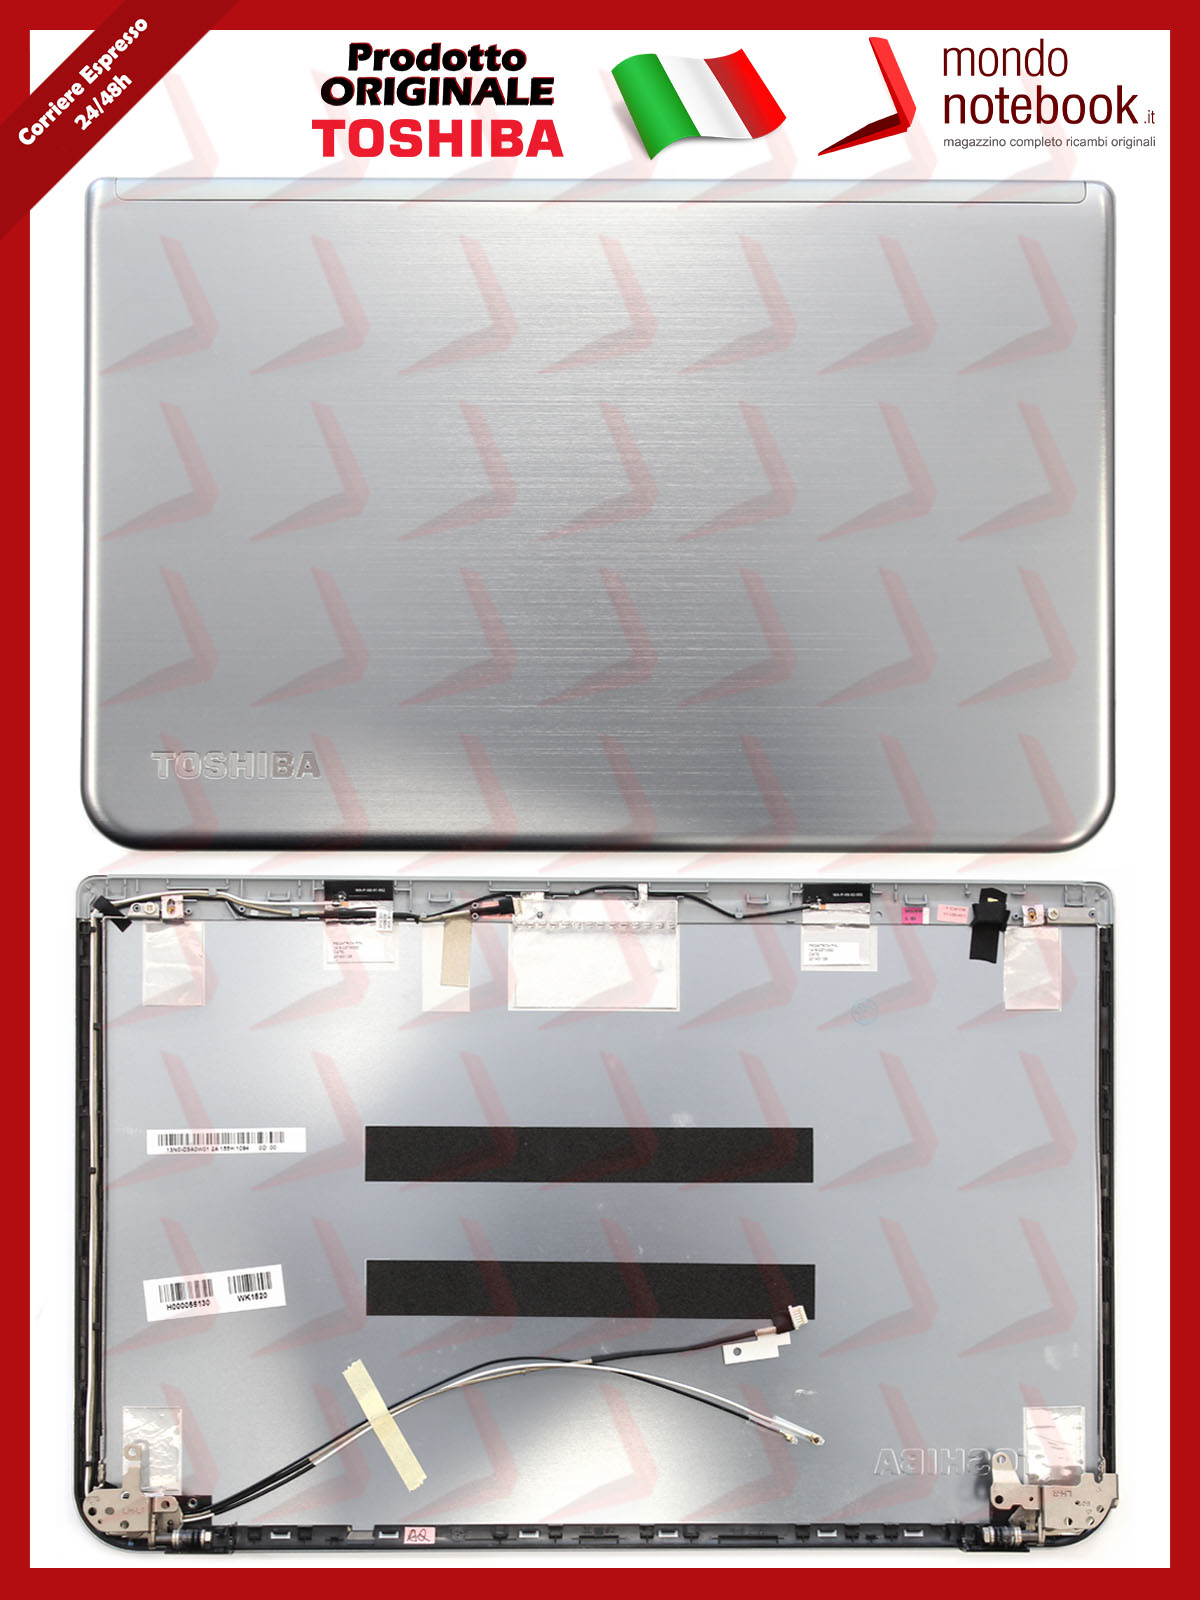 https://www.mondonotebook.it/7364/cover-lcd-toshiba-satellite-p55-s55a-s50d-a-silver.jpg